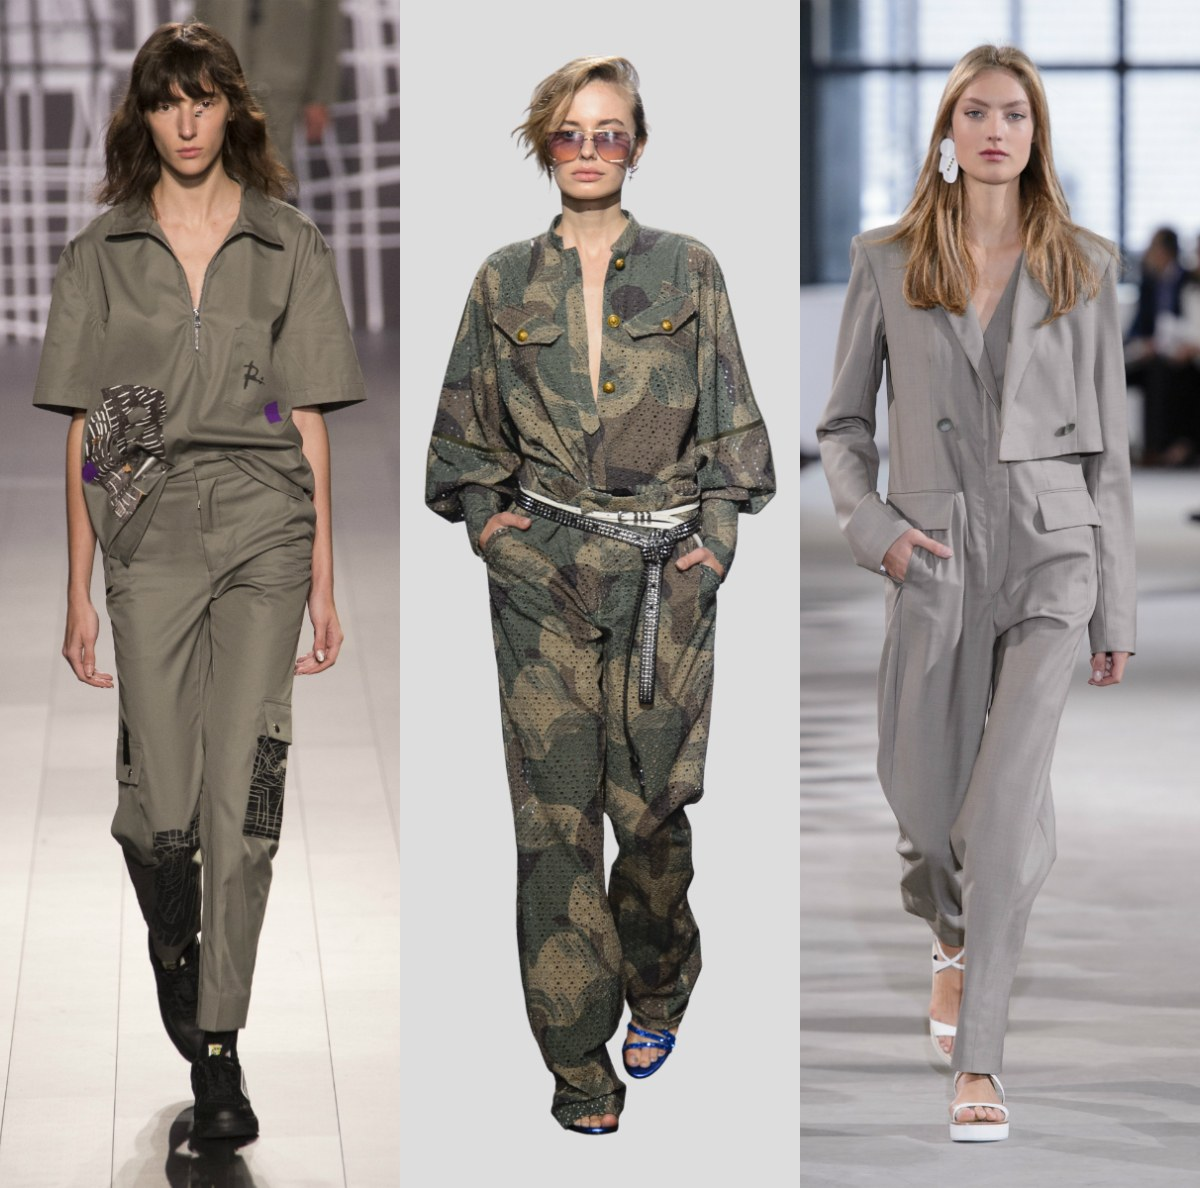 Beauty and Fashion Predictions 2019 - Beauty Wellbeing - Cargo pants are the new jeans